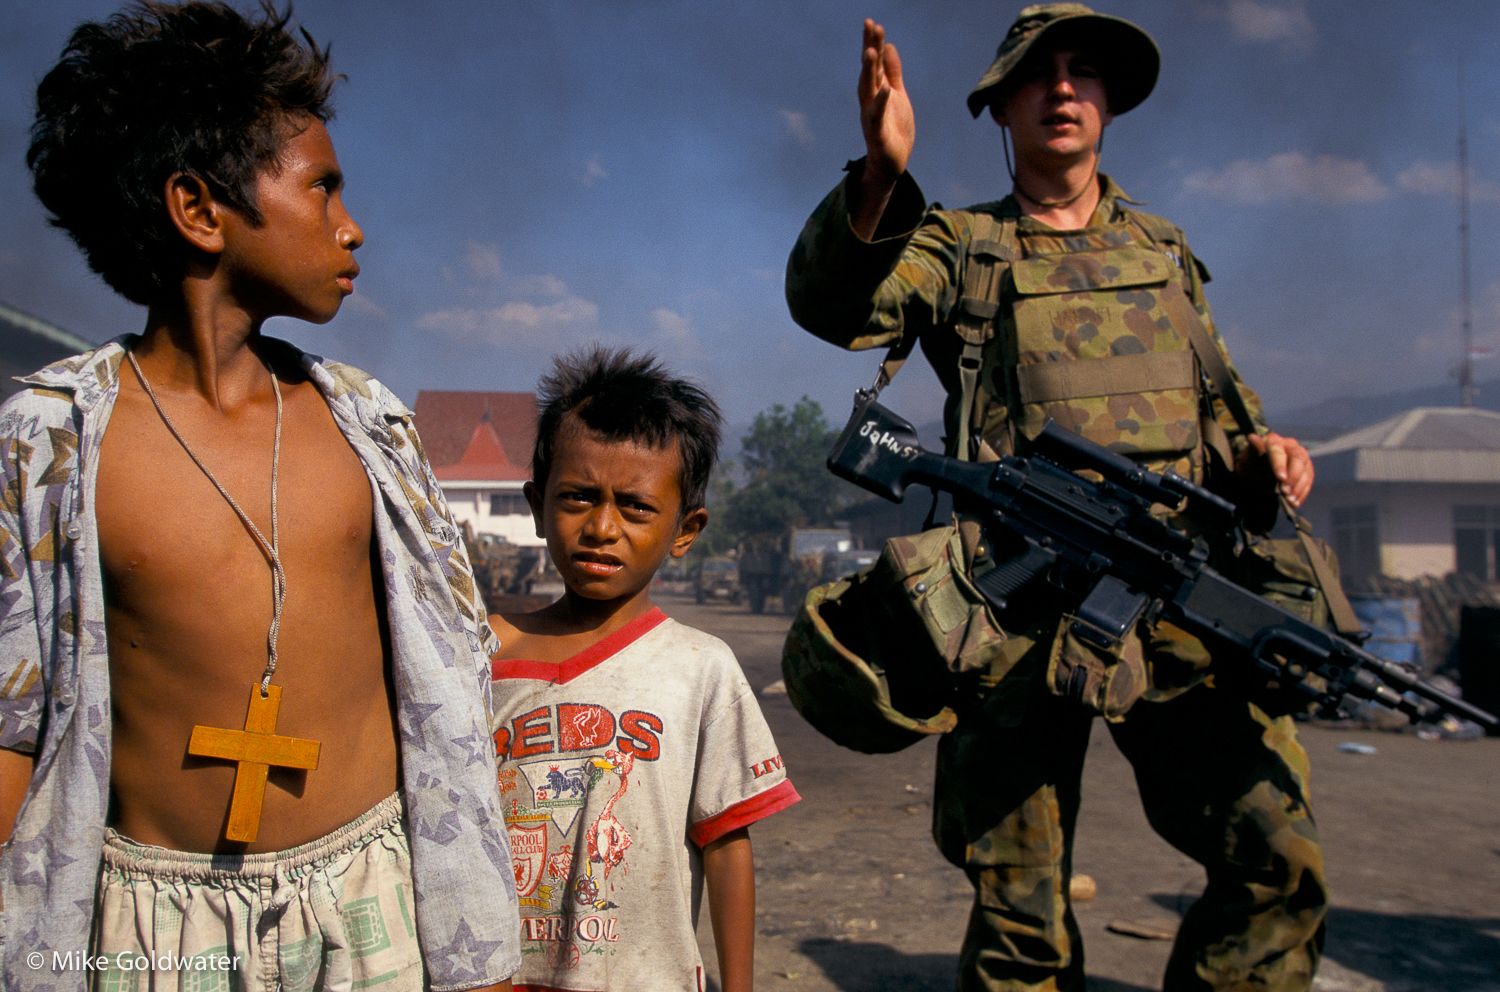 East Timor, September 1999: Displaced East Timorese children take refuge in a camp in Dili protected by Australian troops.